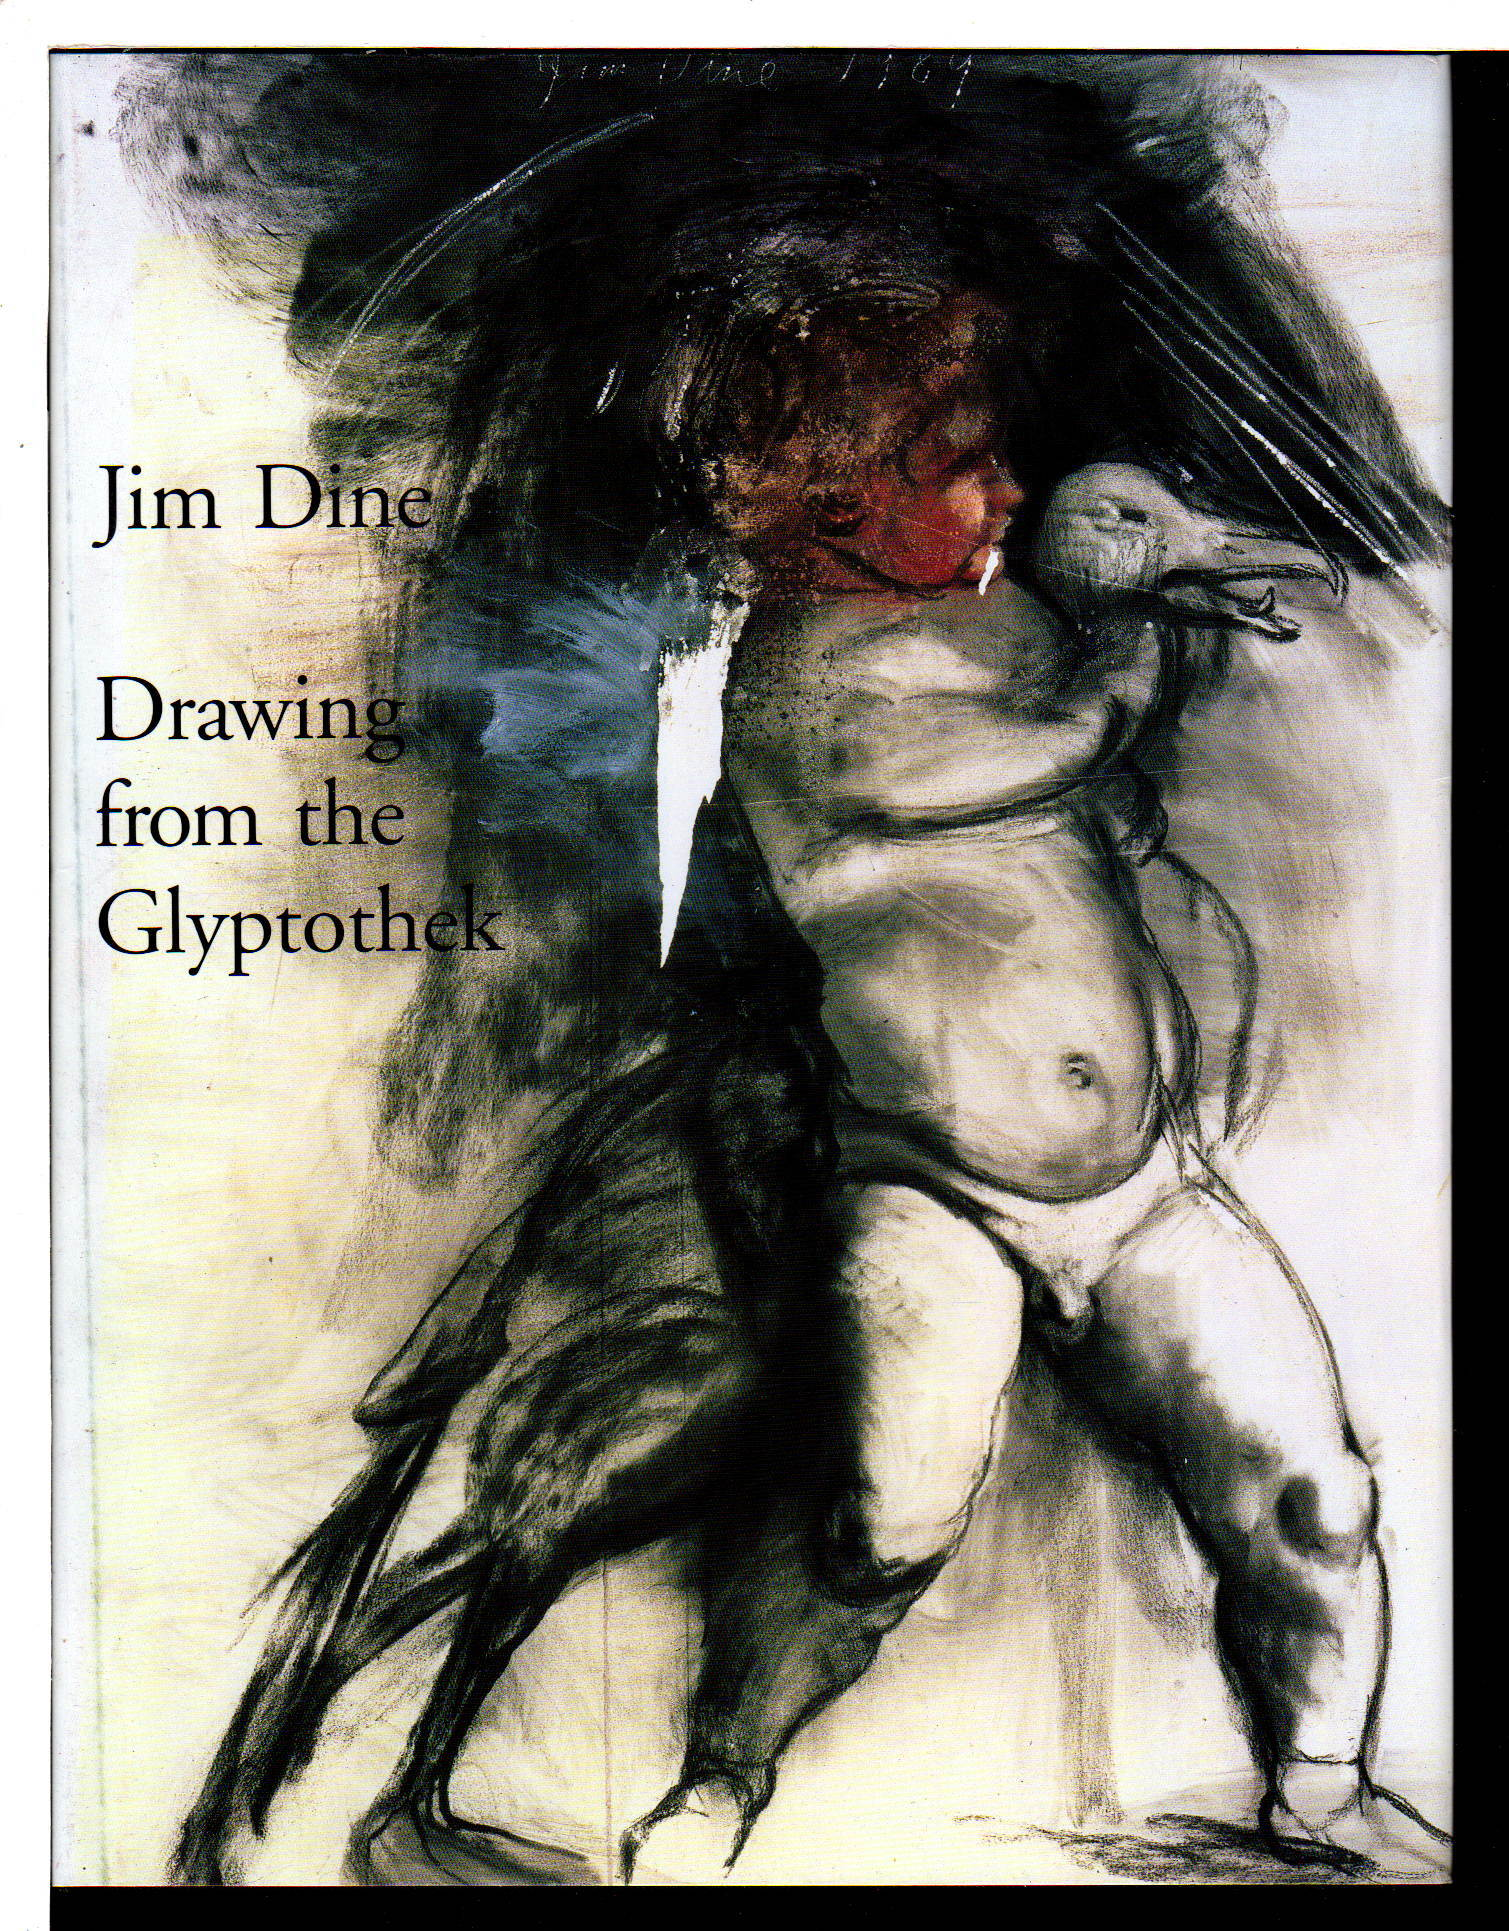 DINE, JIM; RUTH E FINE AND STEPHEN FLEISCHMAN - JIM DINE: DRAWING FROM THE GLYPTOTHEK.